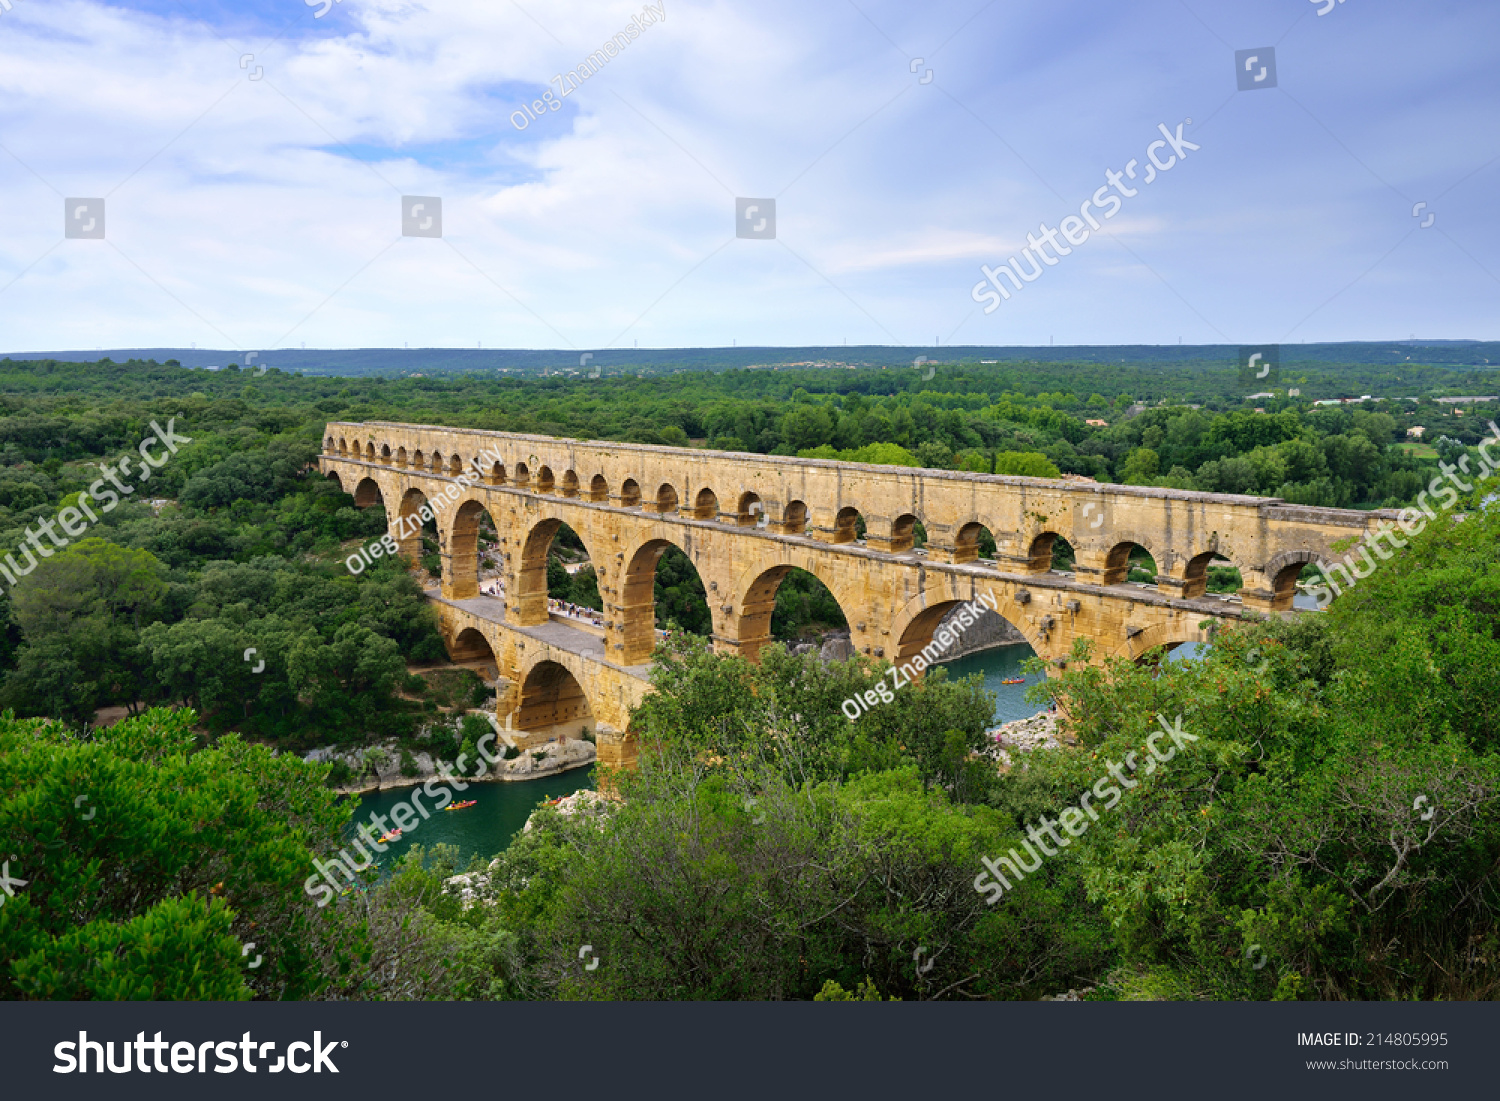 How Old Is The Aqueduct At Nimes 77